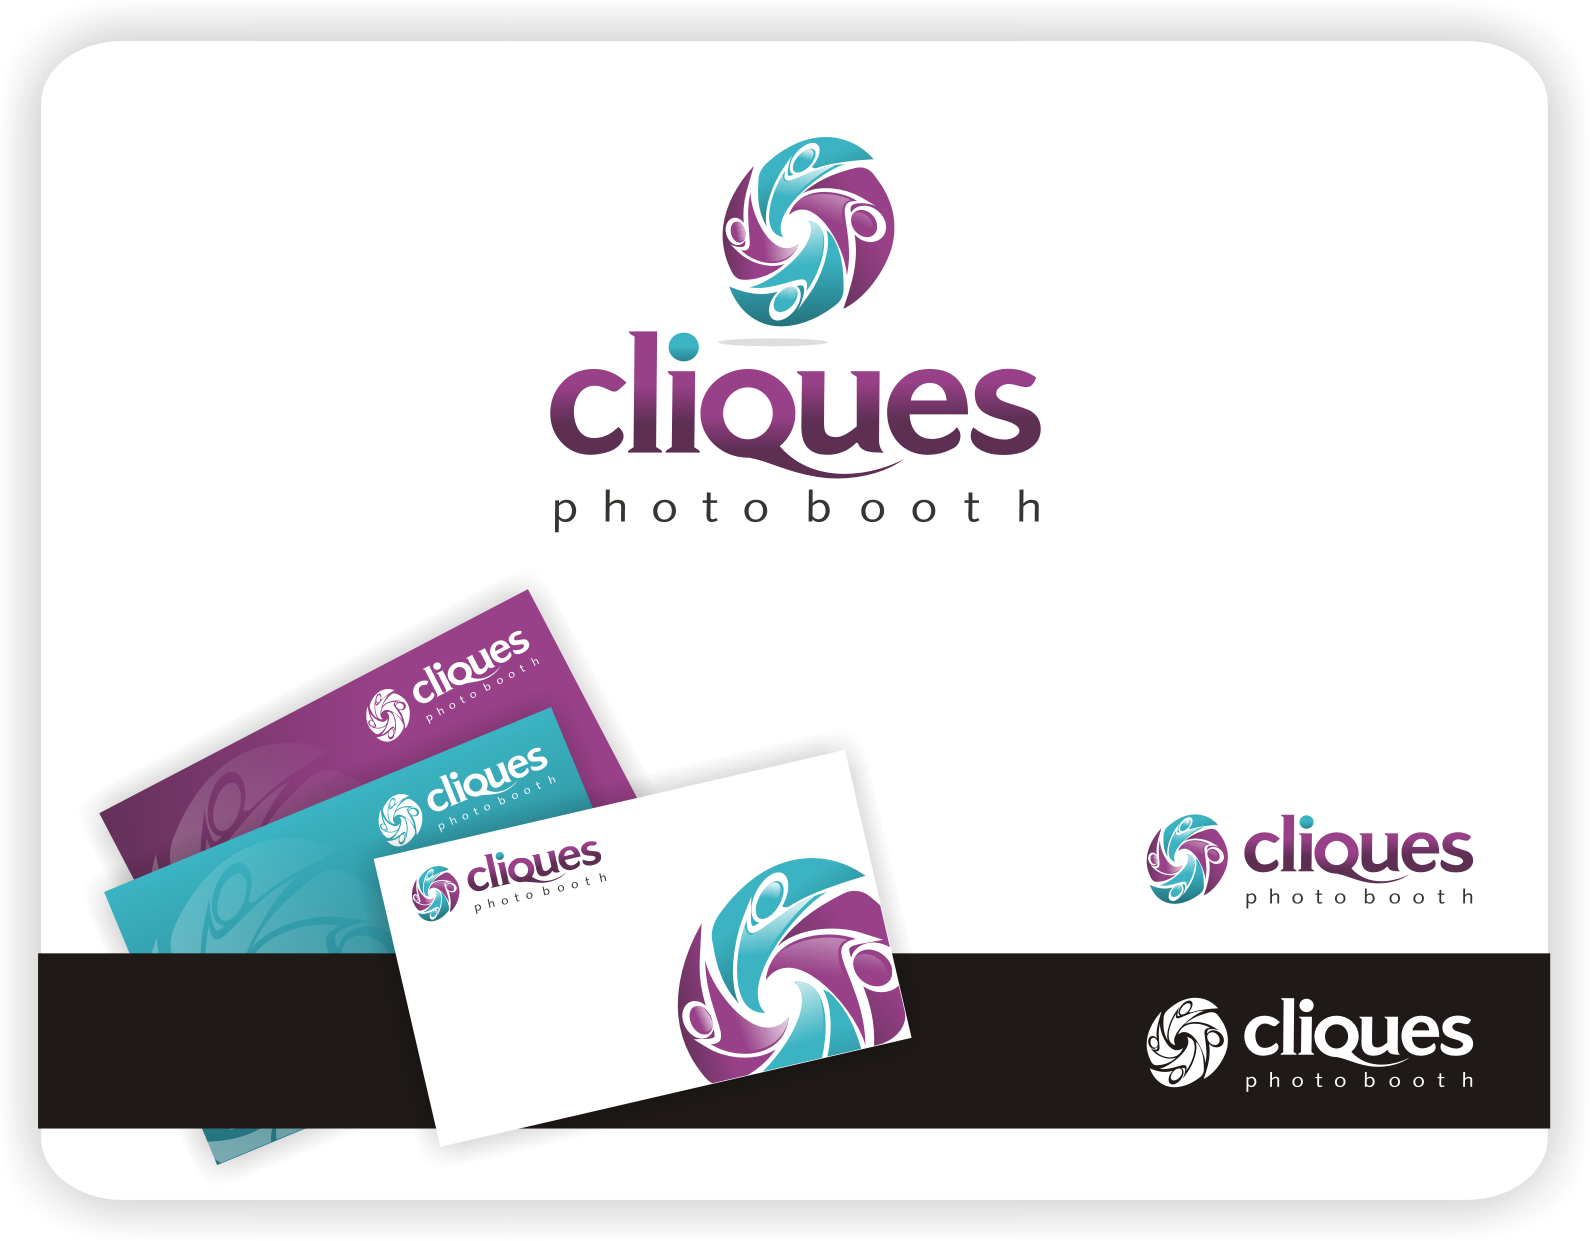 Create the next logo for Cliques Photo Booth